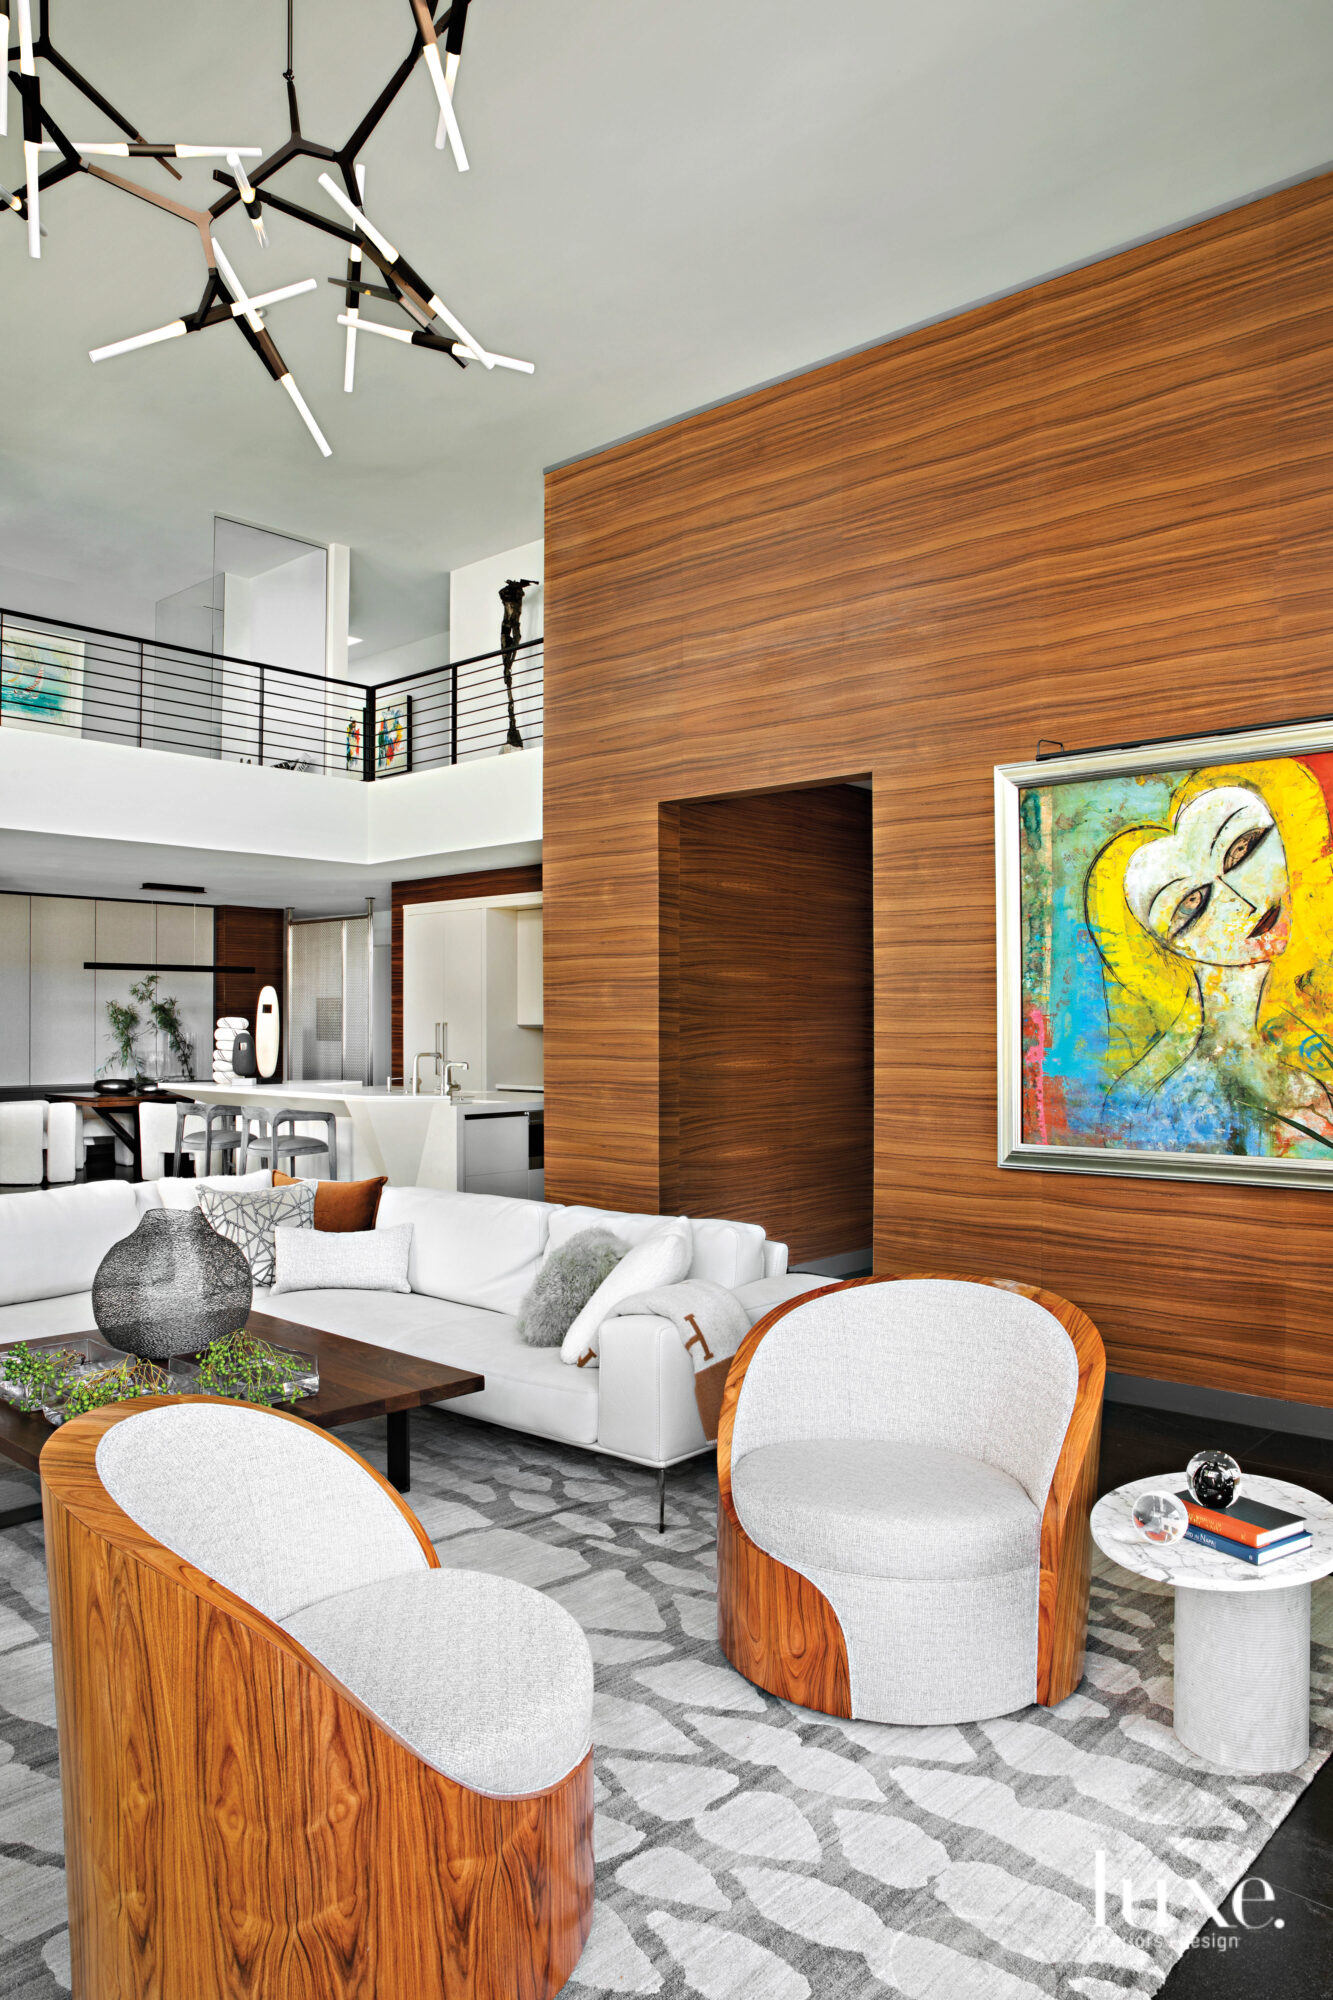 The double-height living room with...